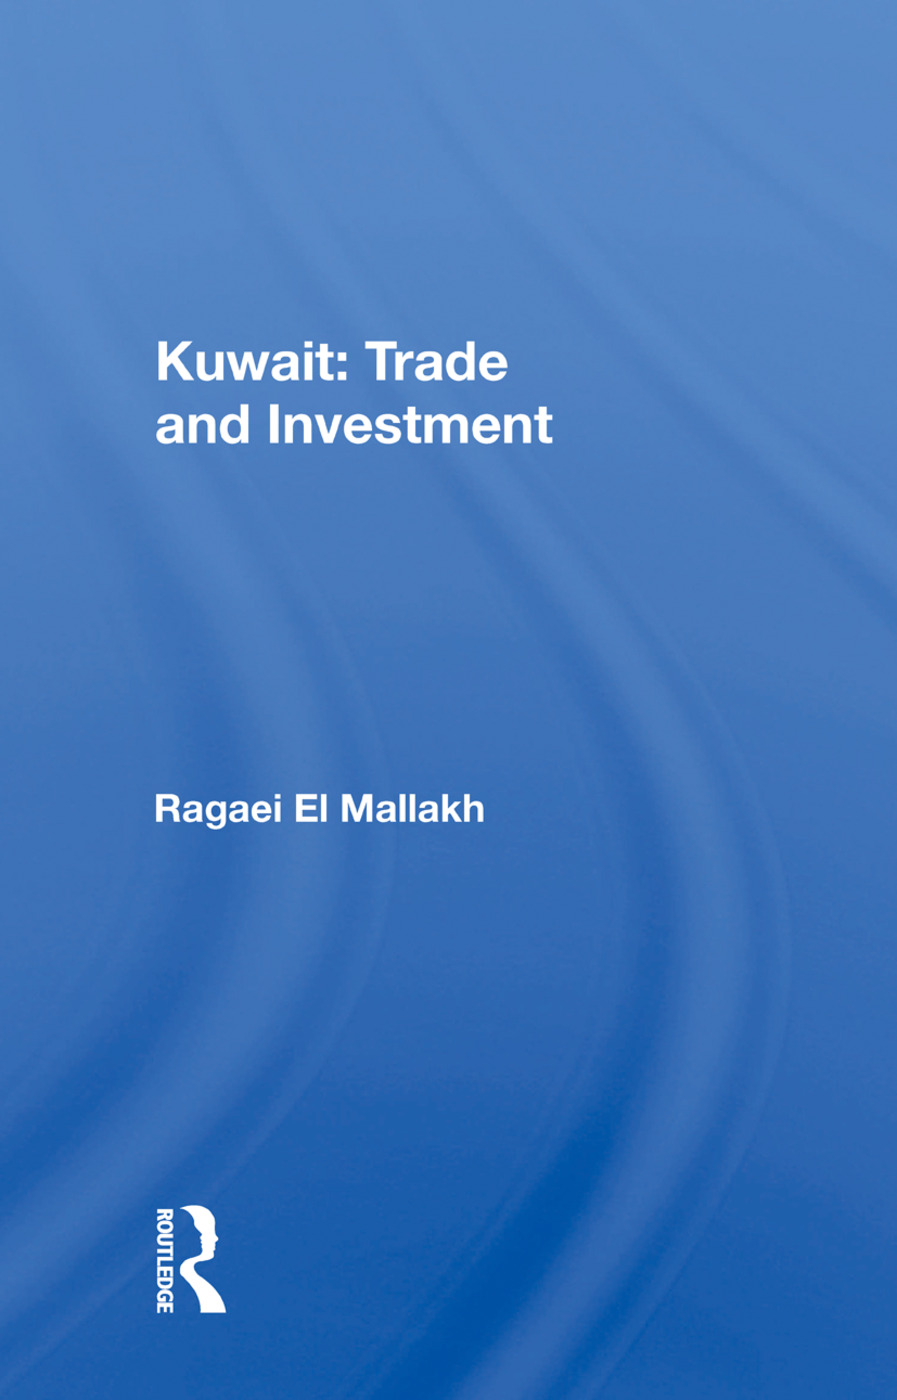 Kuwait: Trade and Investment